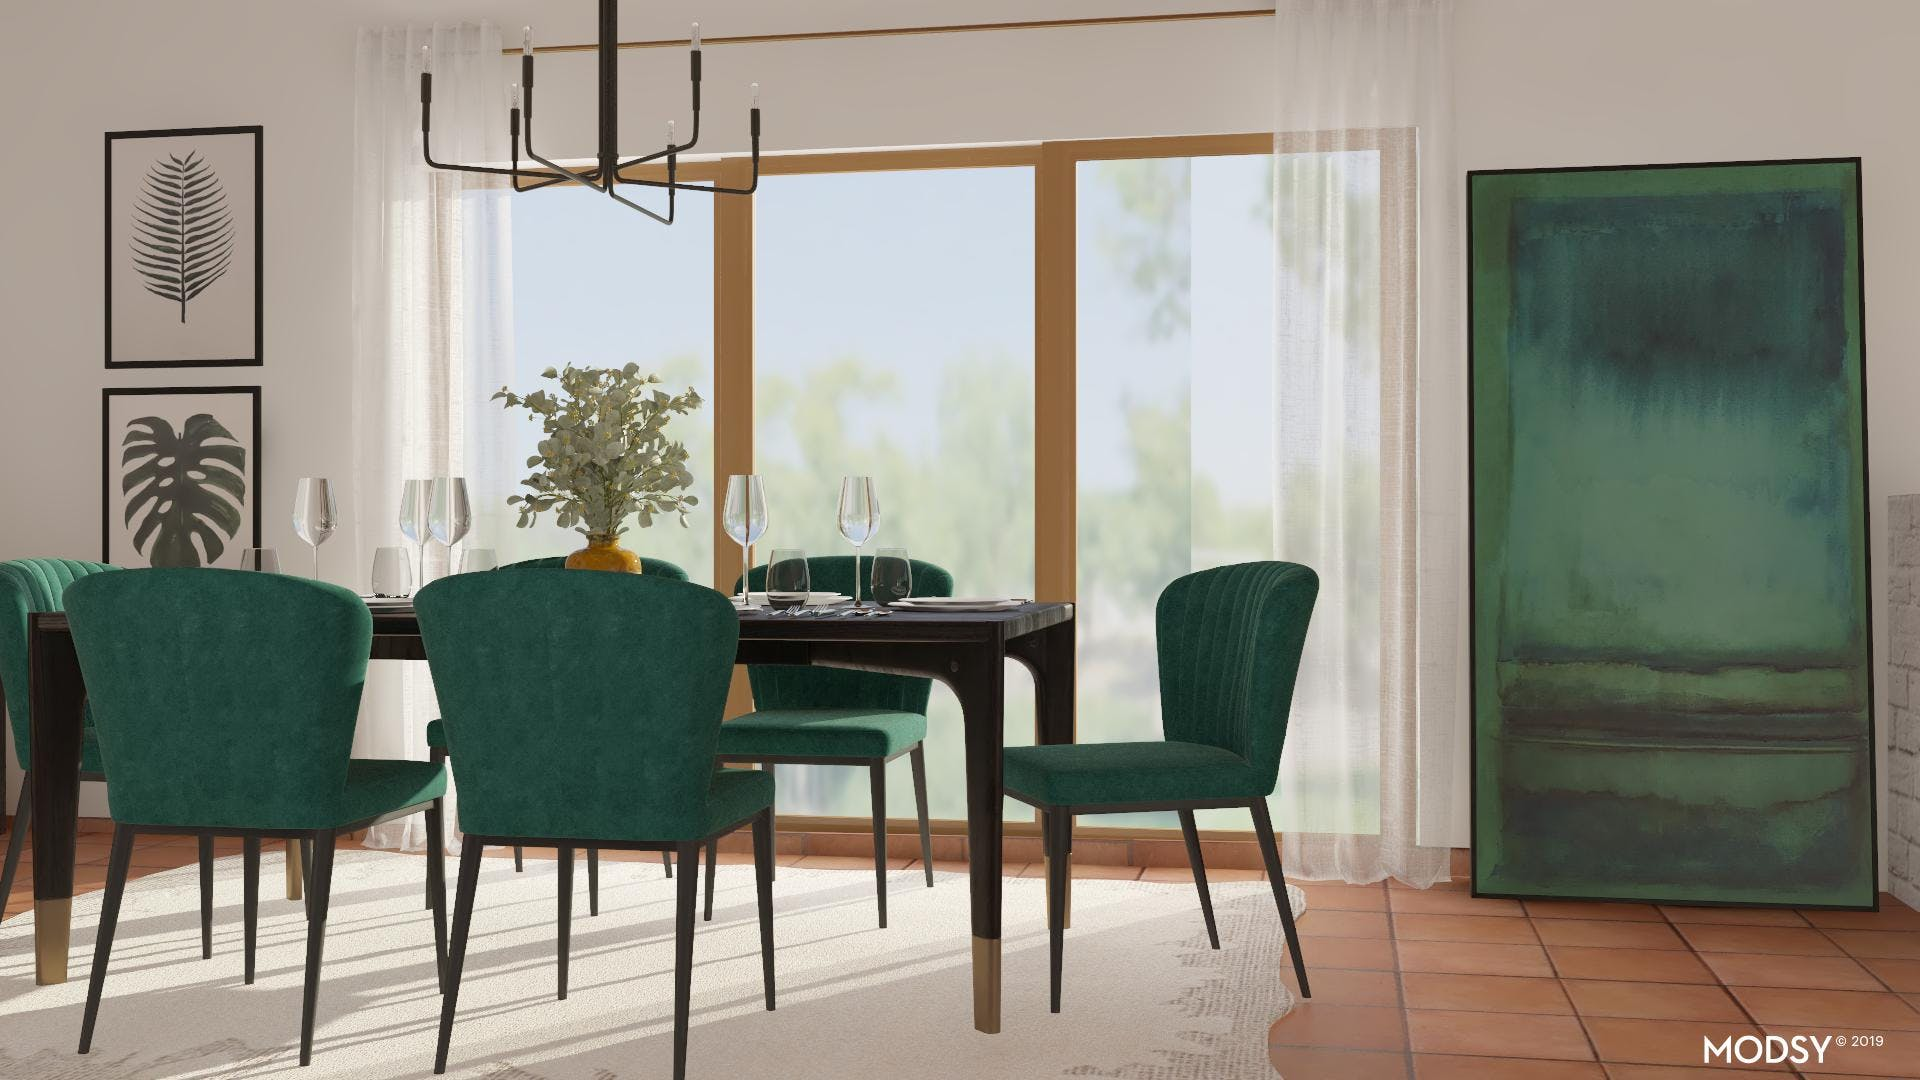 Details That Soften: Contemporary Dining